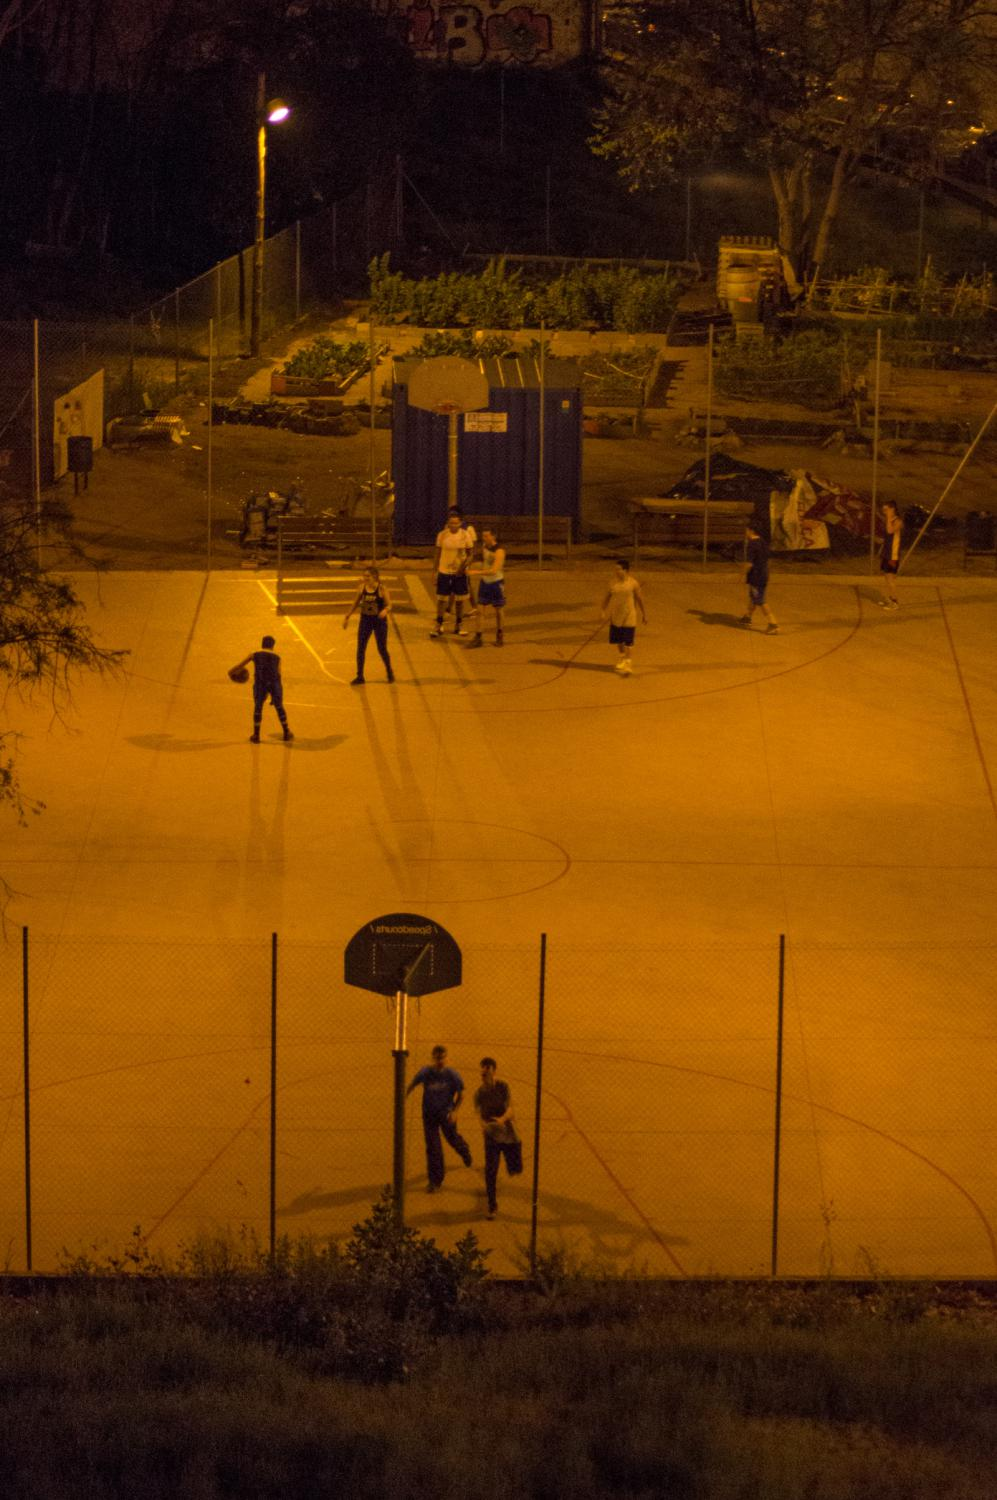 People playing basketball in Barcelona